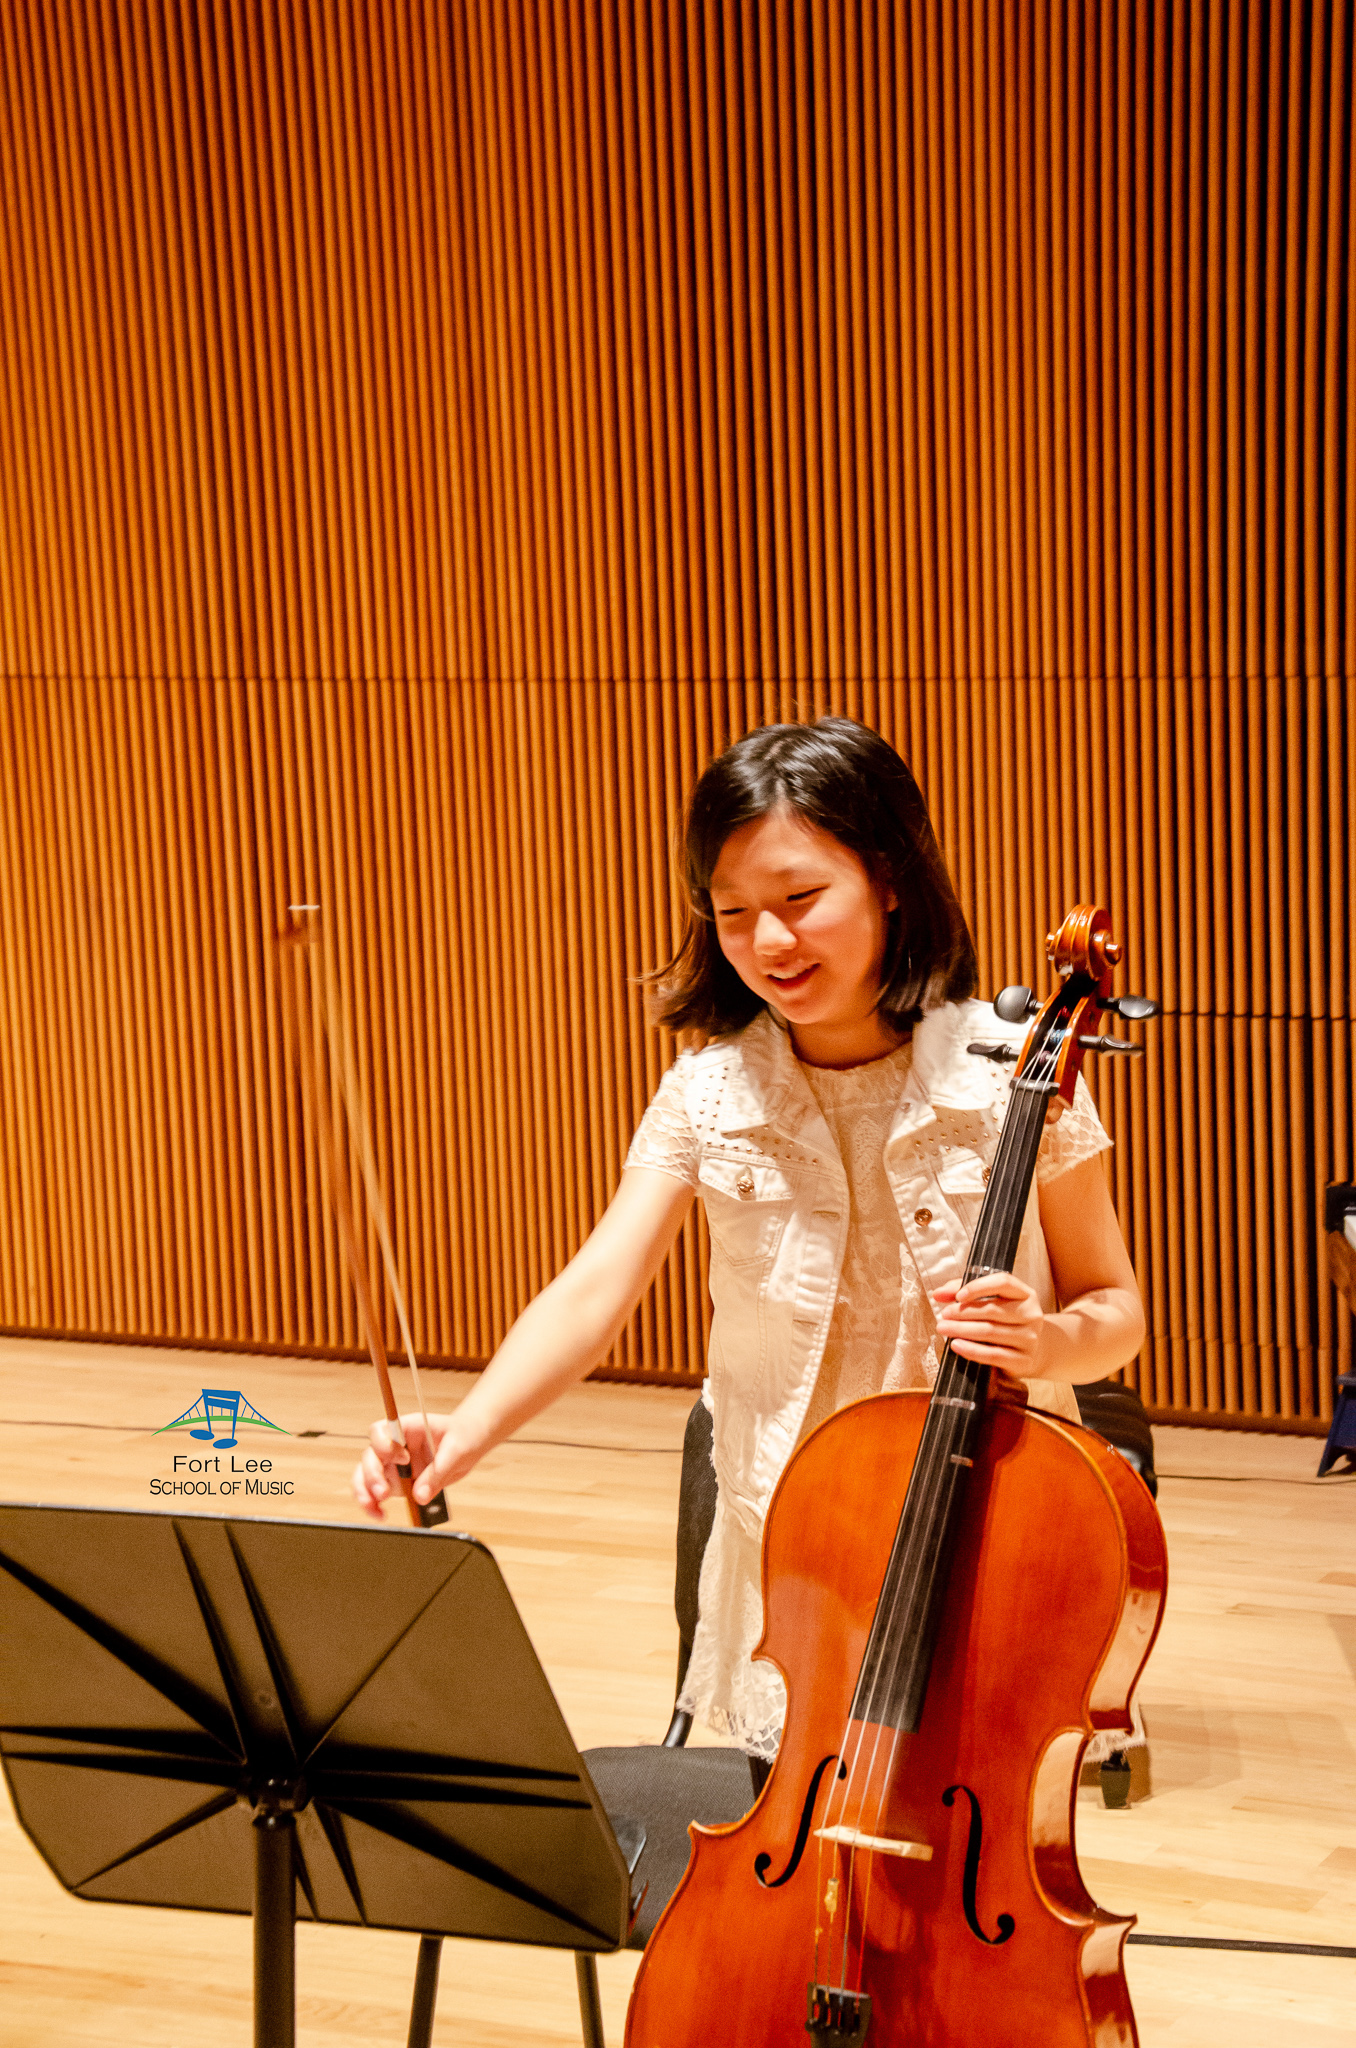 cello-lessons-englewood-cliffs.jpg